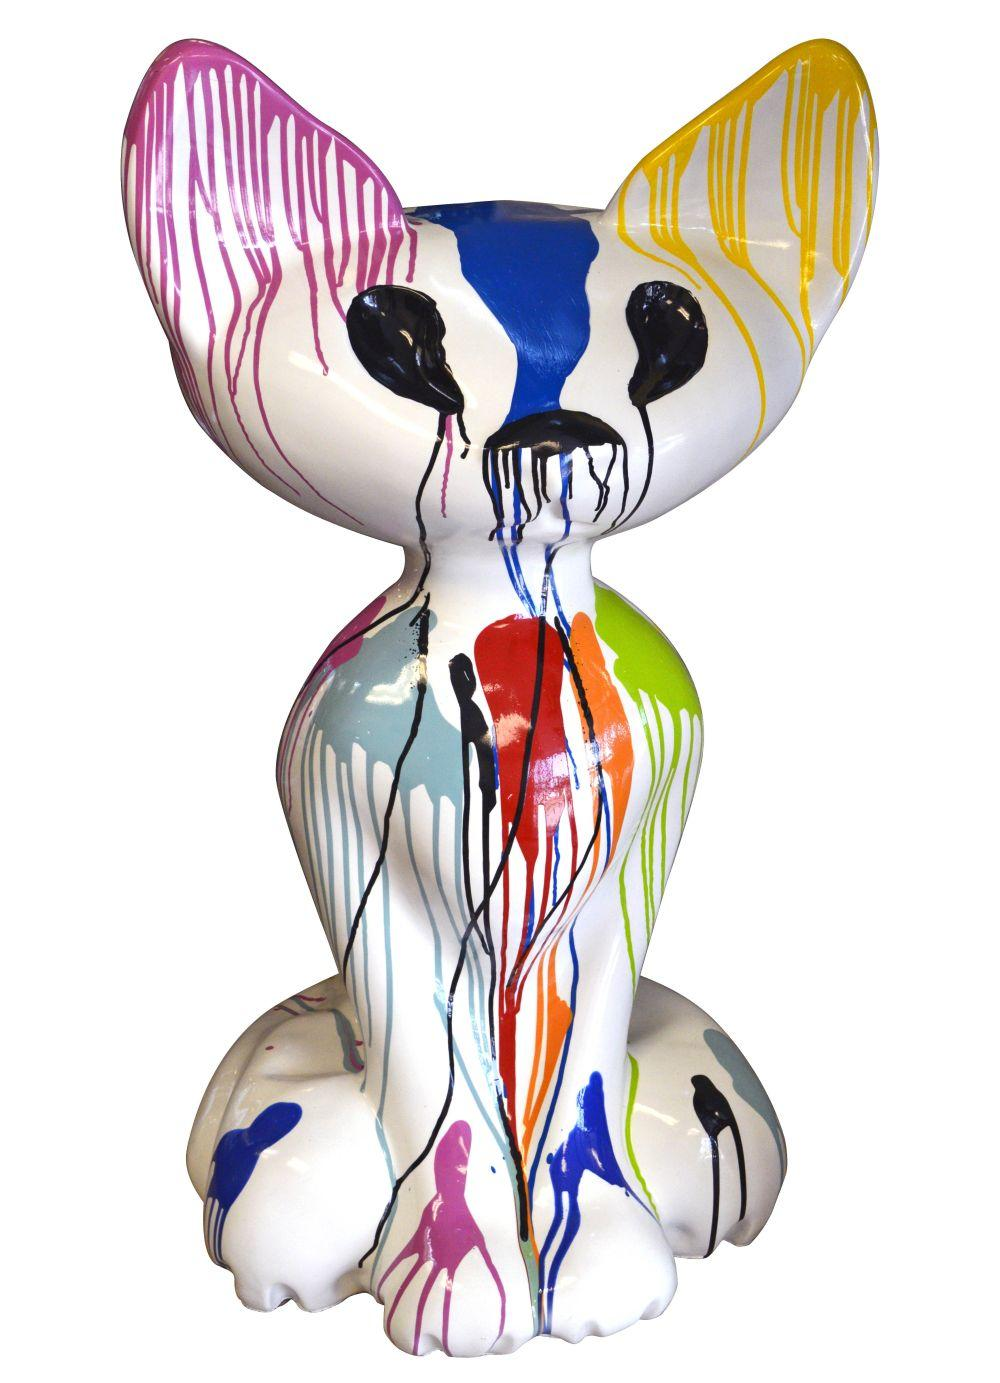 Whimsical polychrome sculpture